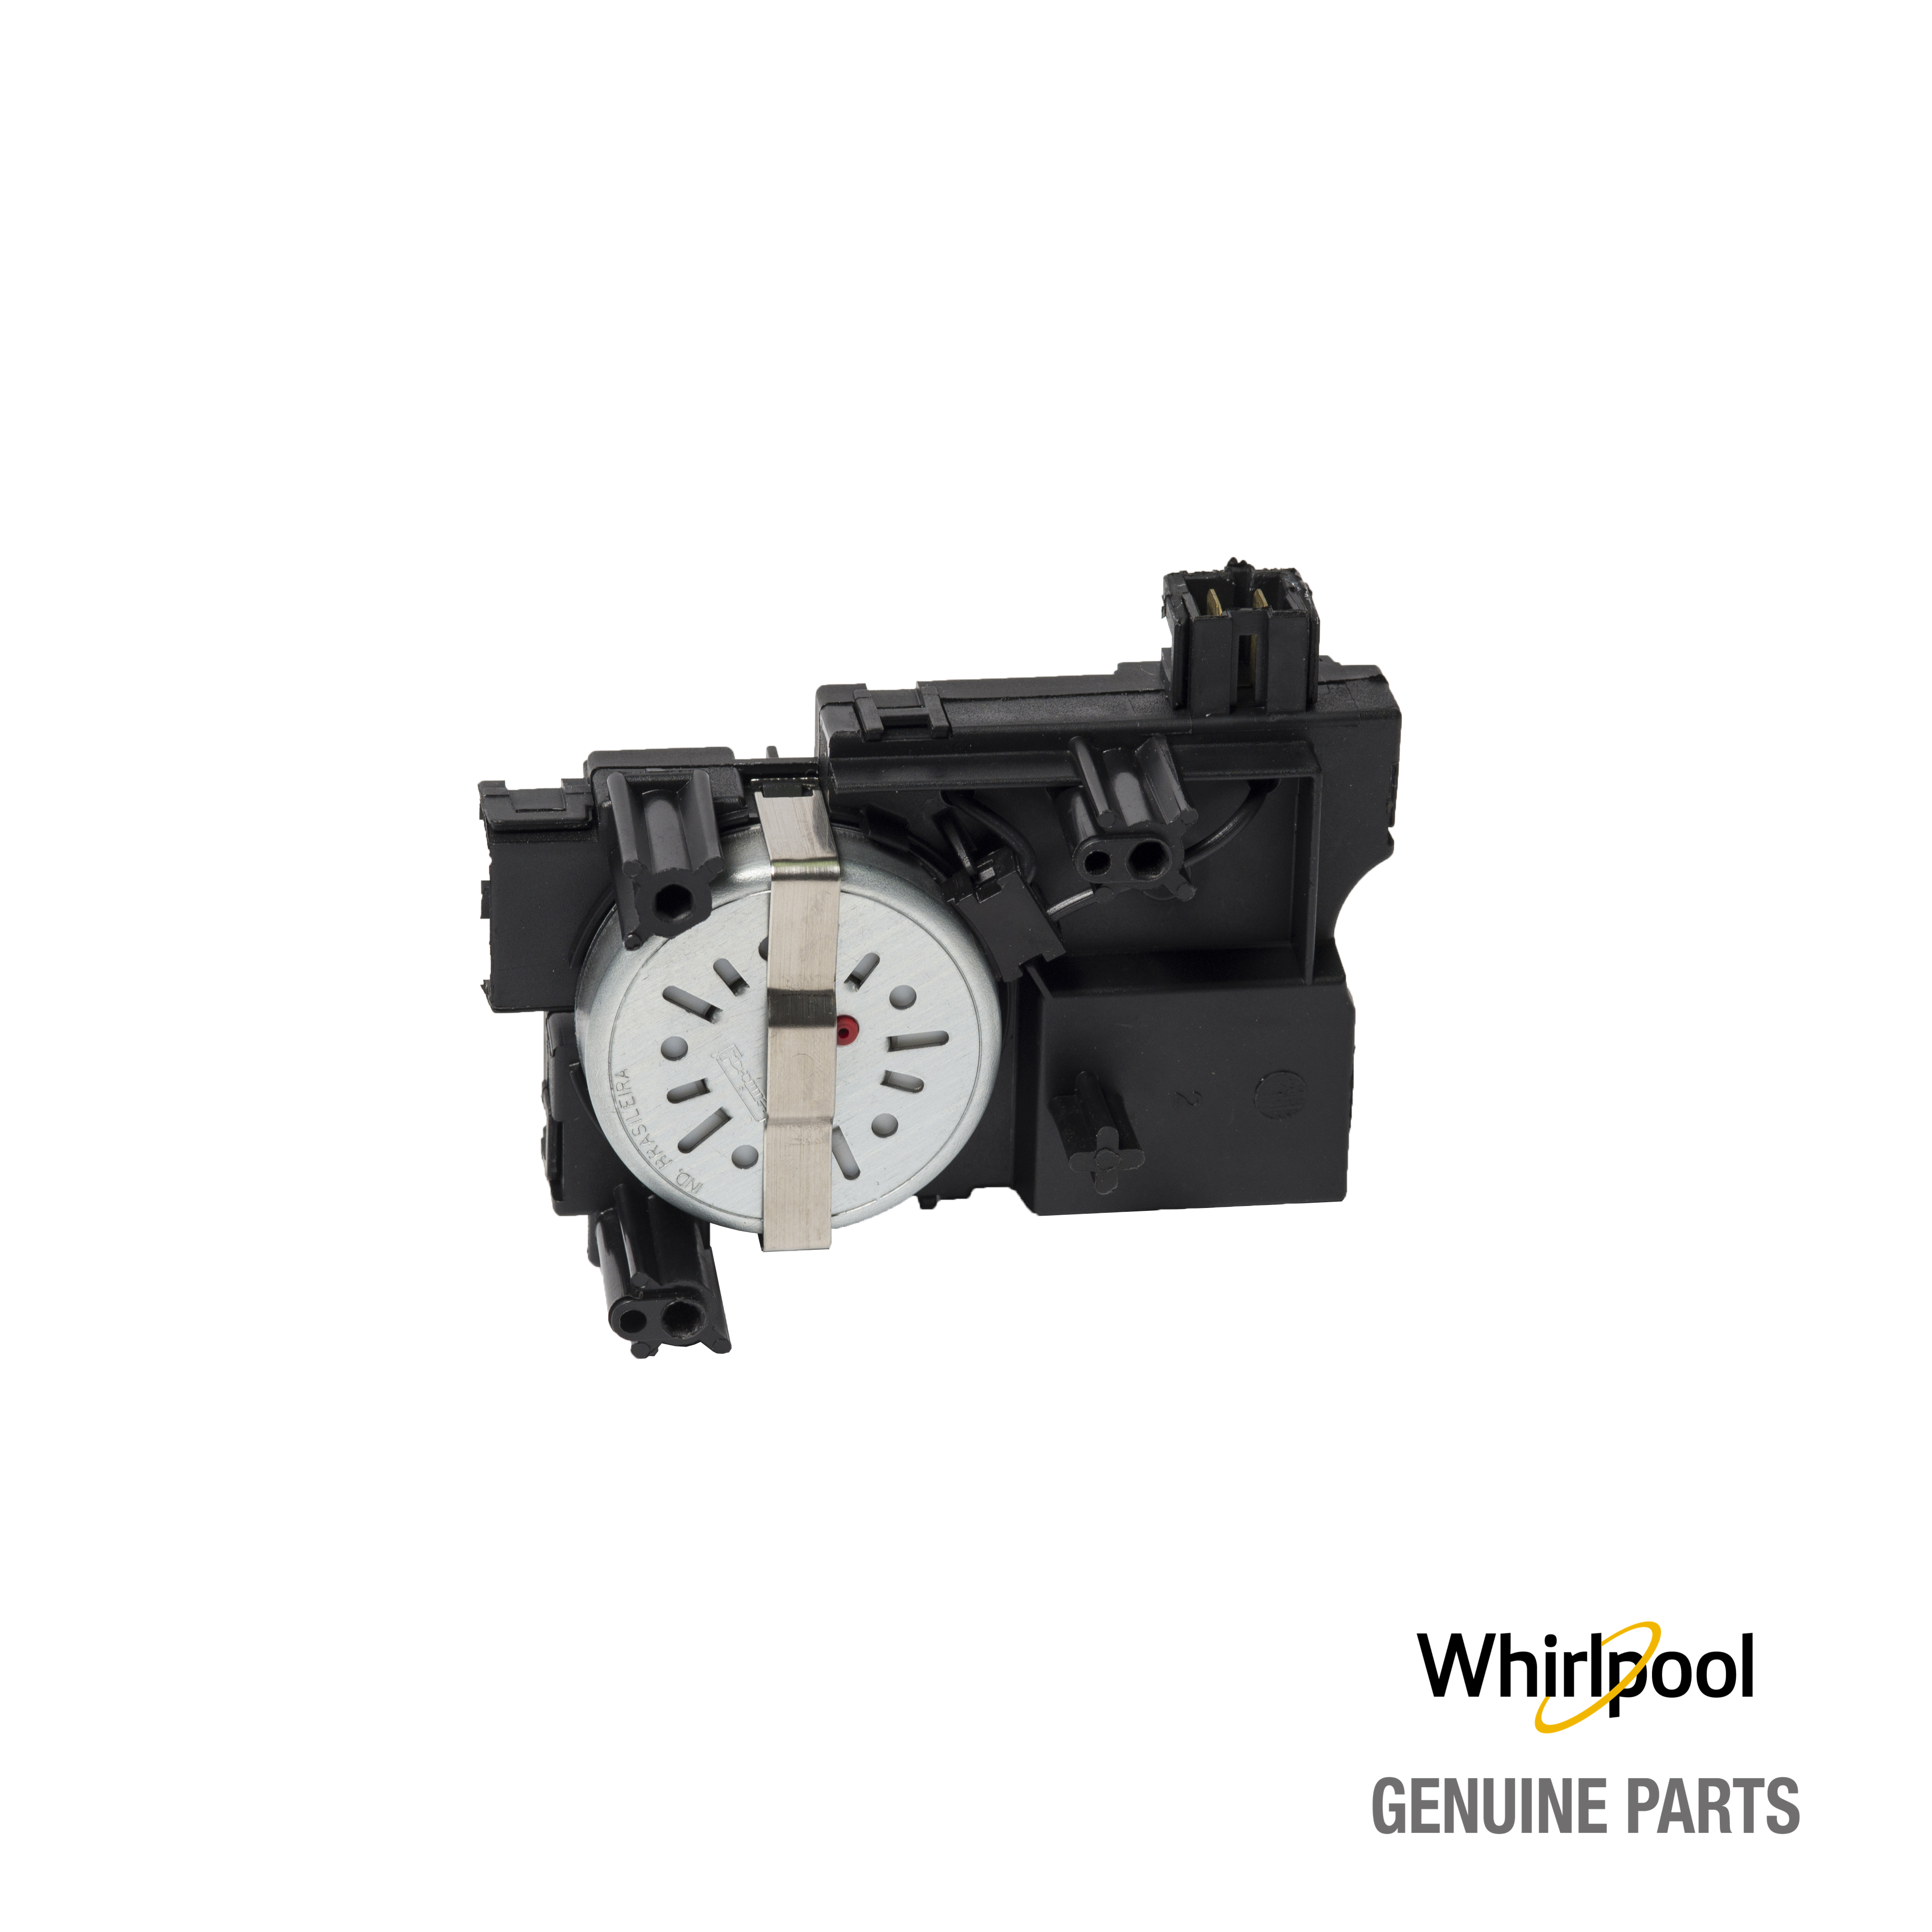 WHIRLPOOL MEXICO ACTUATOR 127V